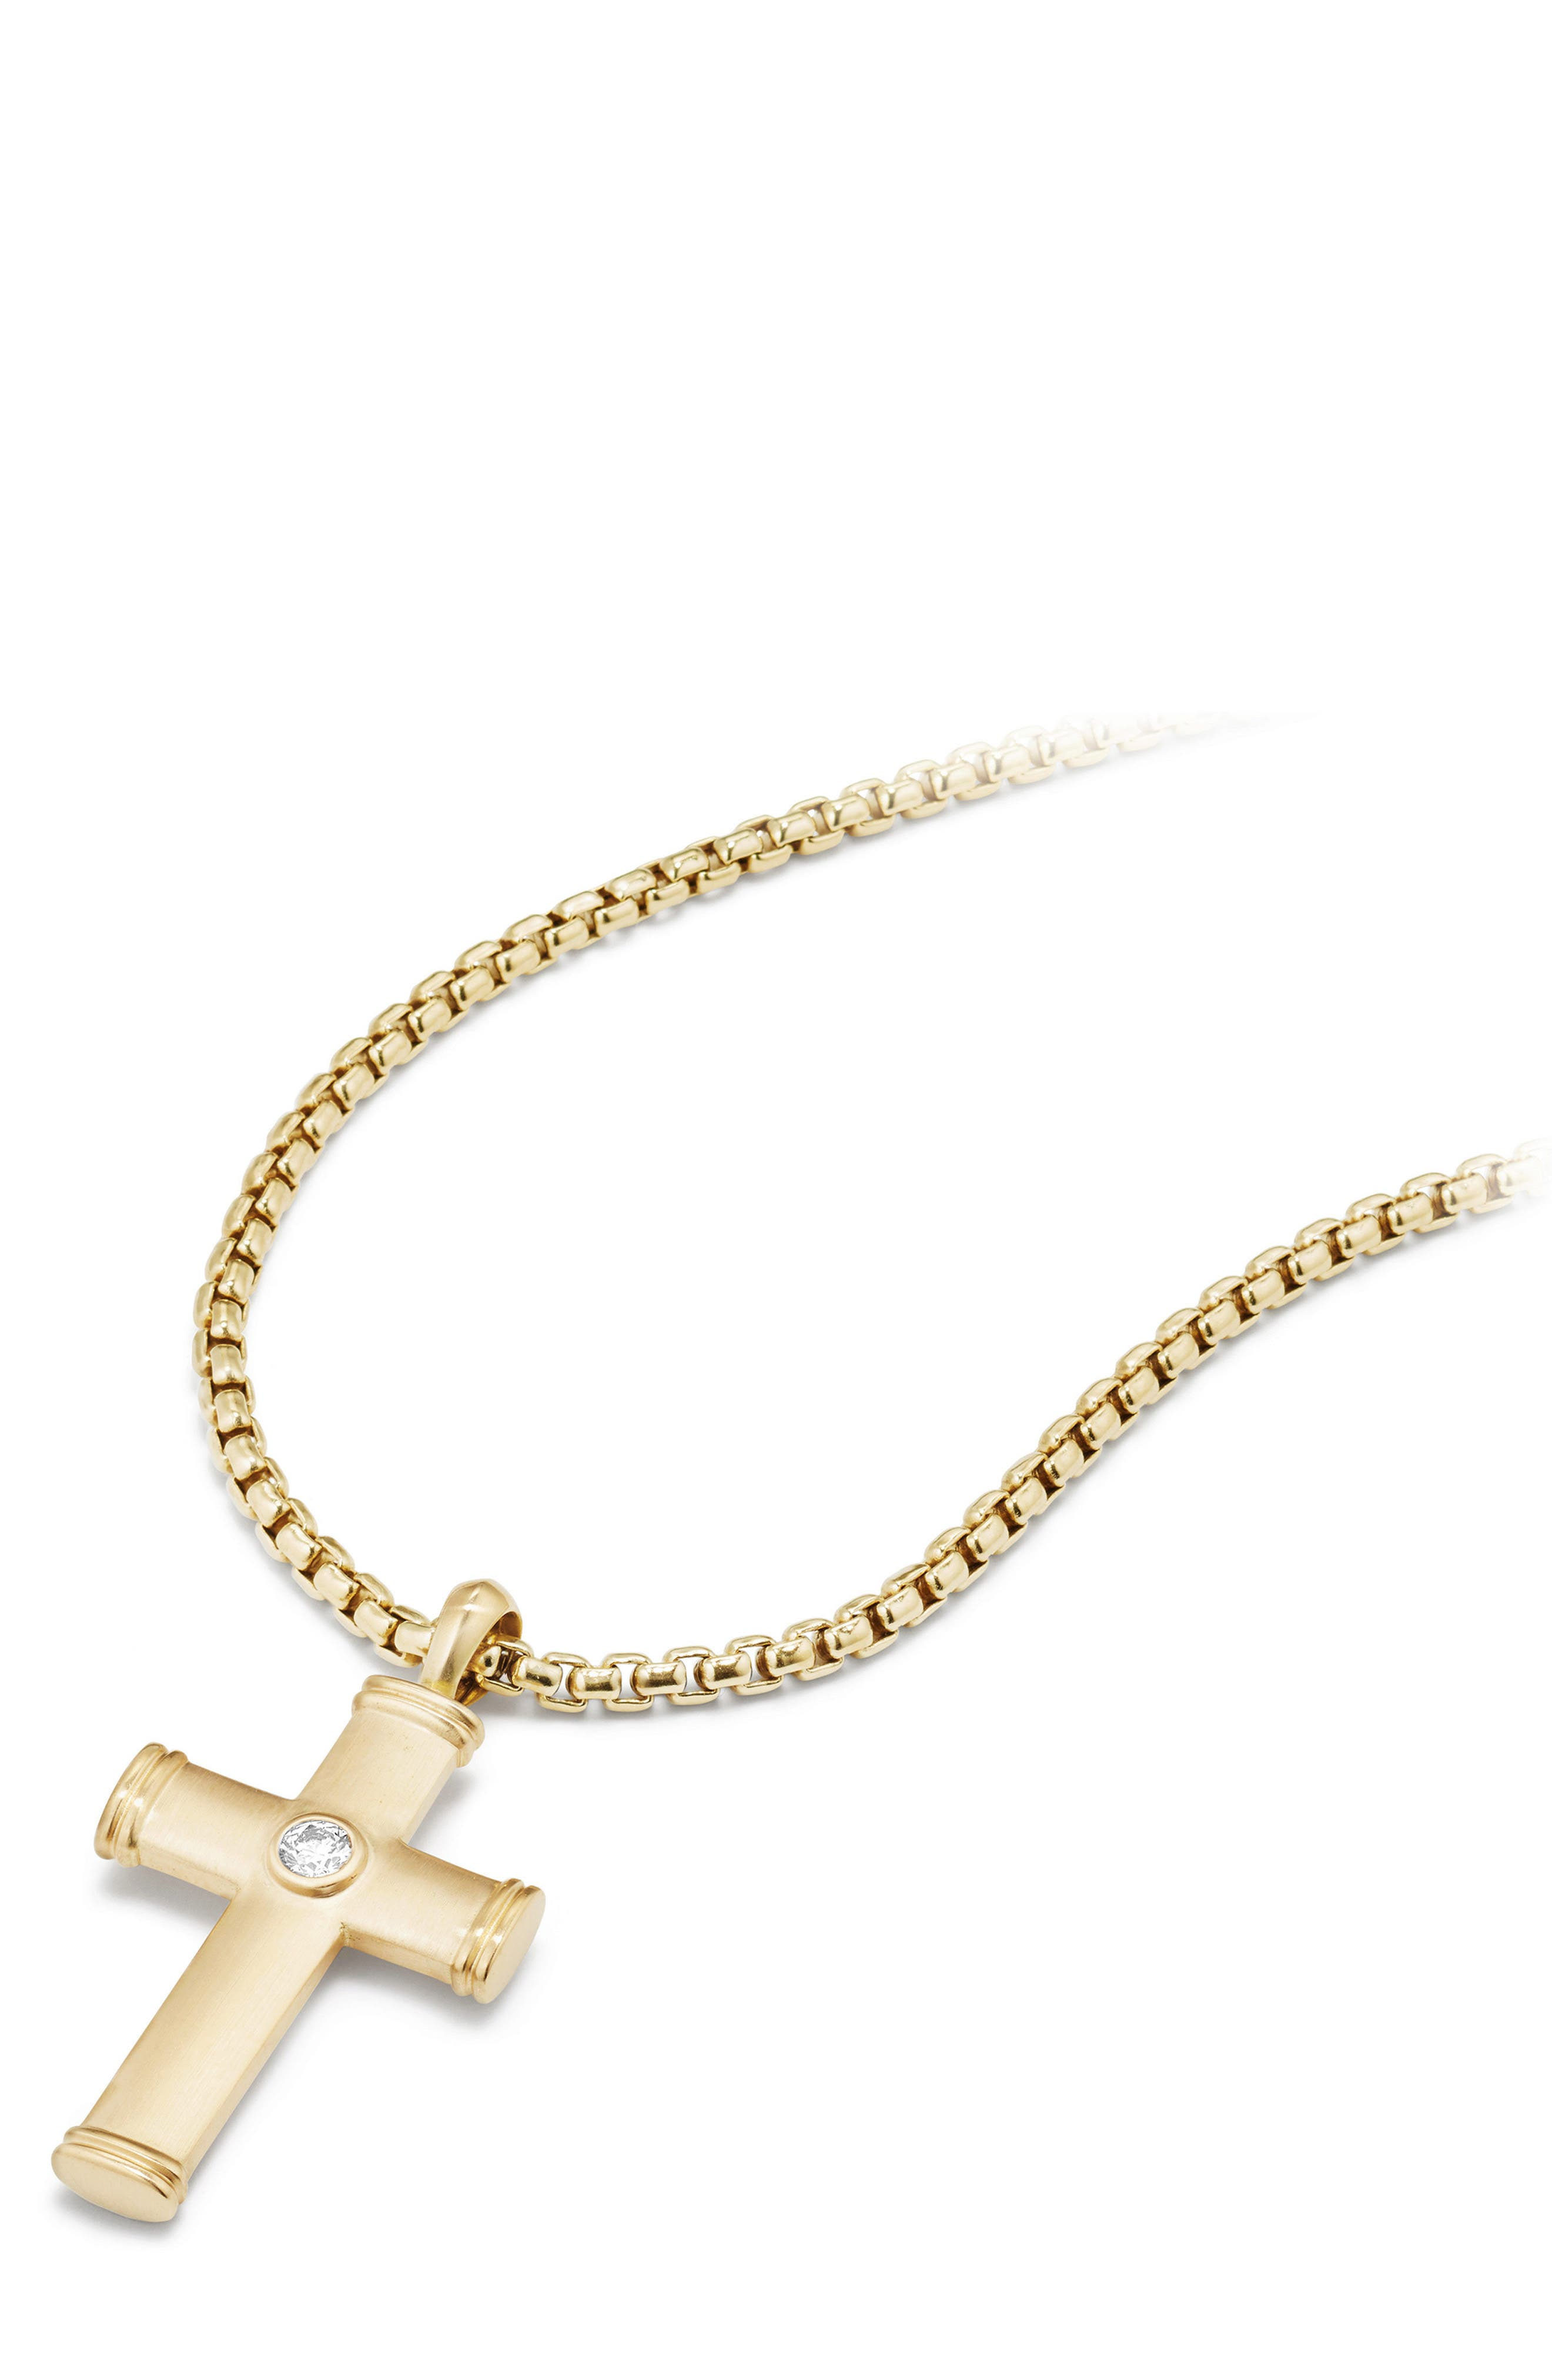 Streamline Cross Tag with Diamonds in 18K Gold,                             Alternate thumbnail 3, color,                             710